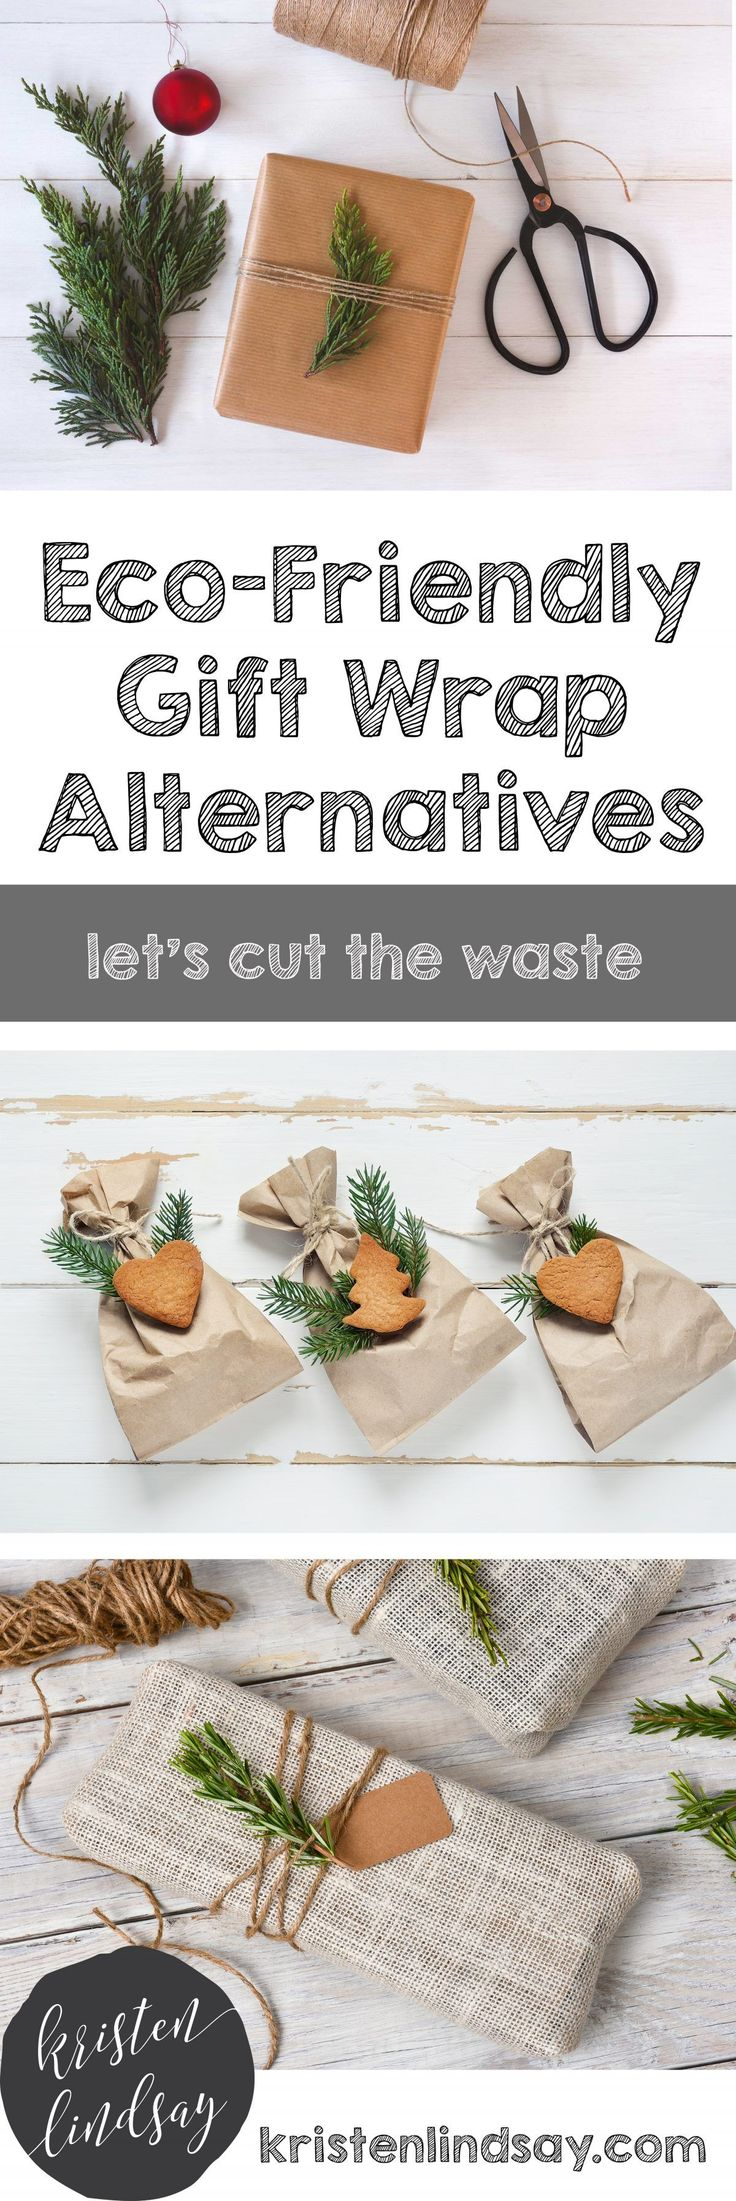 DIY Gift Wrapping Ideas : 6 Eco-Friendly Gift Wrap Alternatives ...